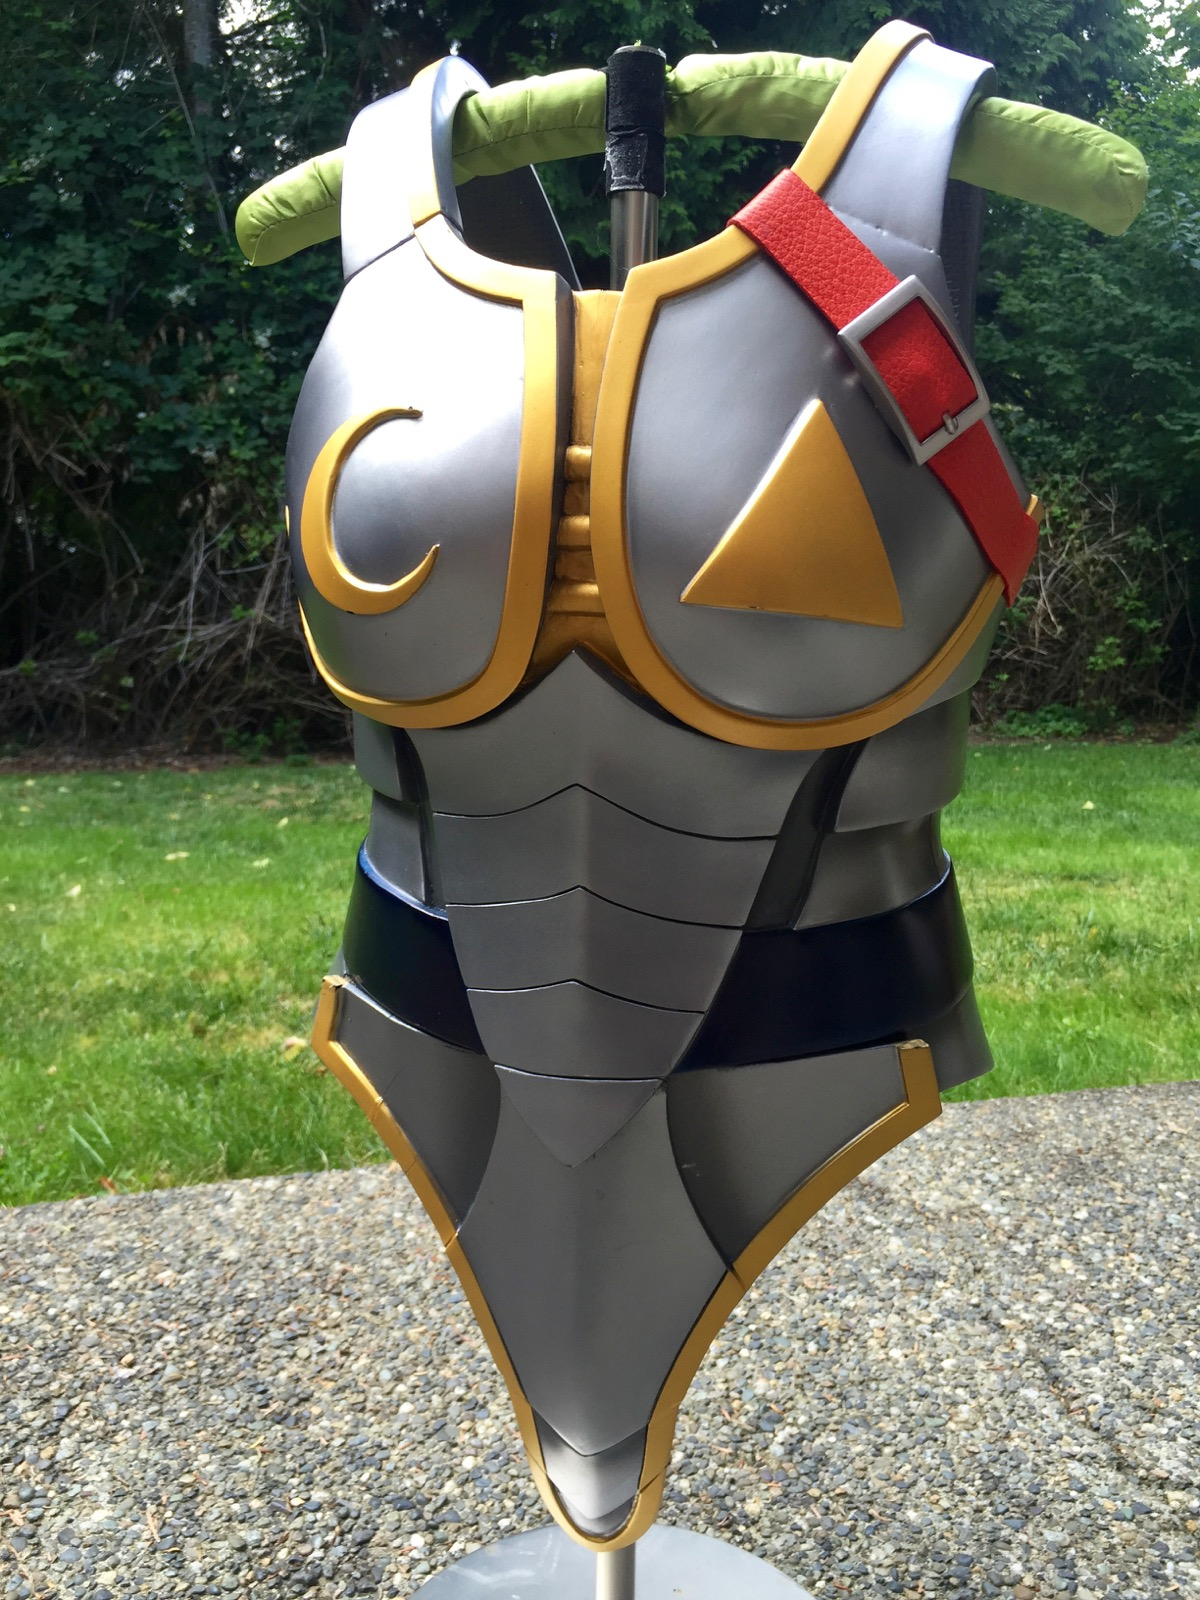 Final armor after several con appearances.